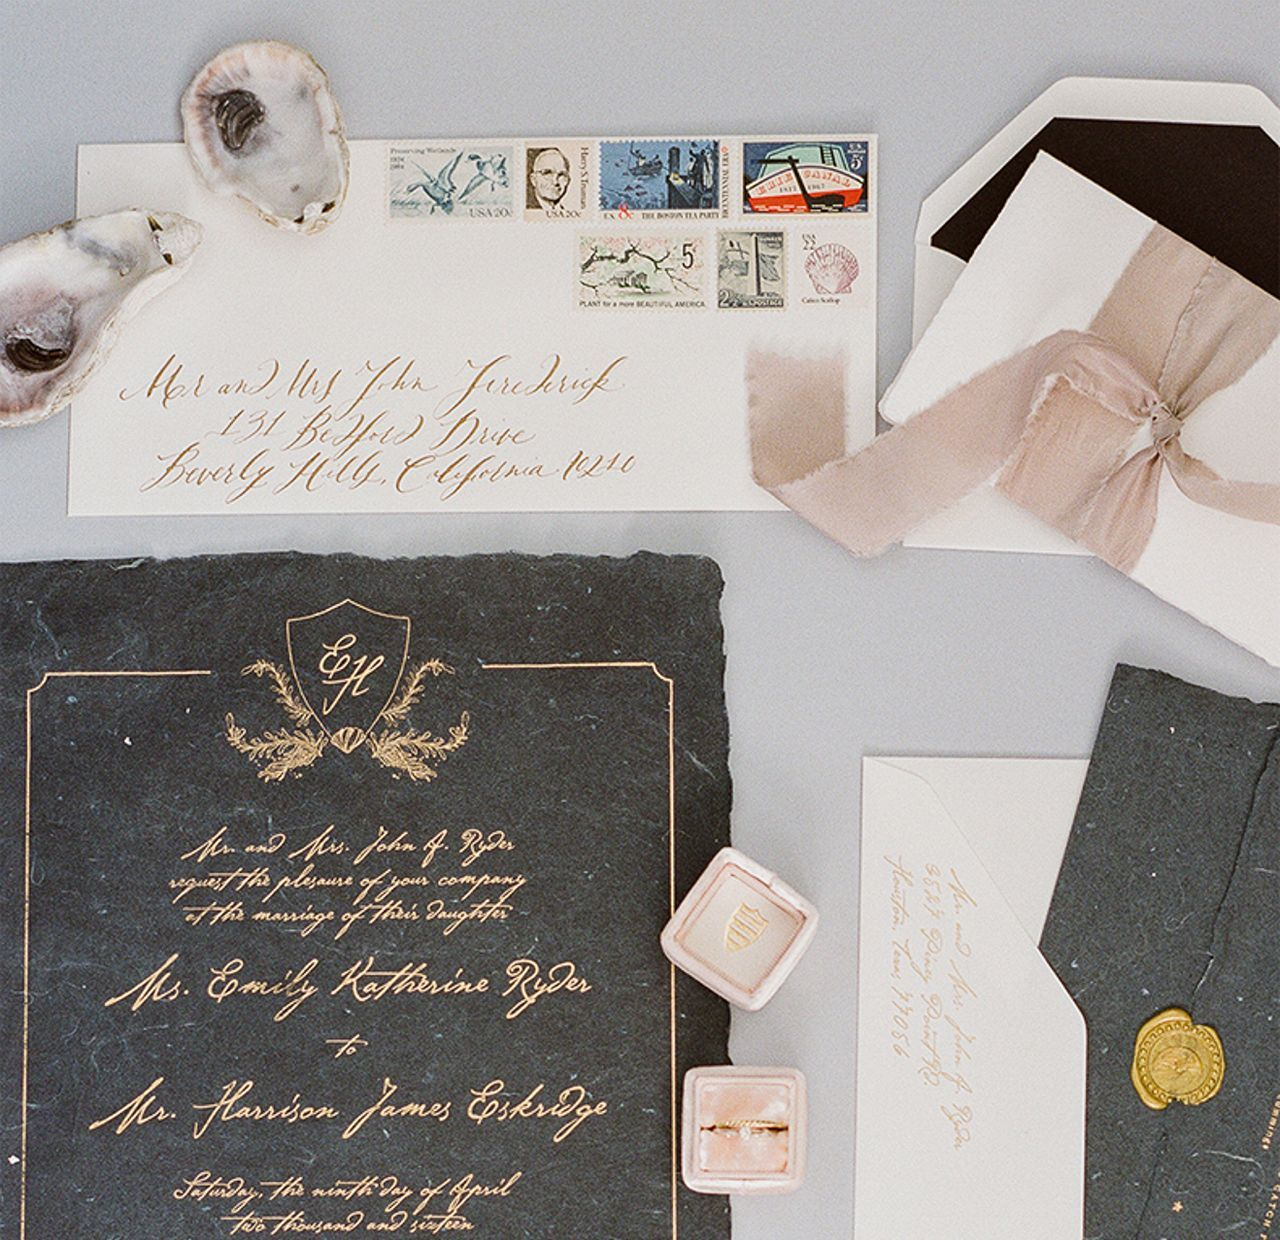 Best wedding invitations of 2016 romantic shipwreck inspired best wedding invitations of 2016 romantic shipwreck inspired calligraphy wedding invitations with deckled edges monicamarmolfo Image collections